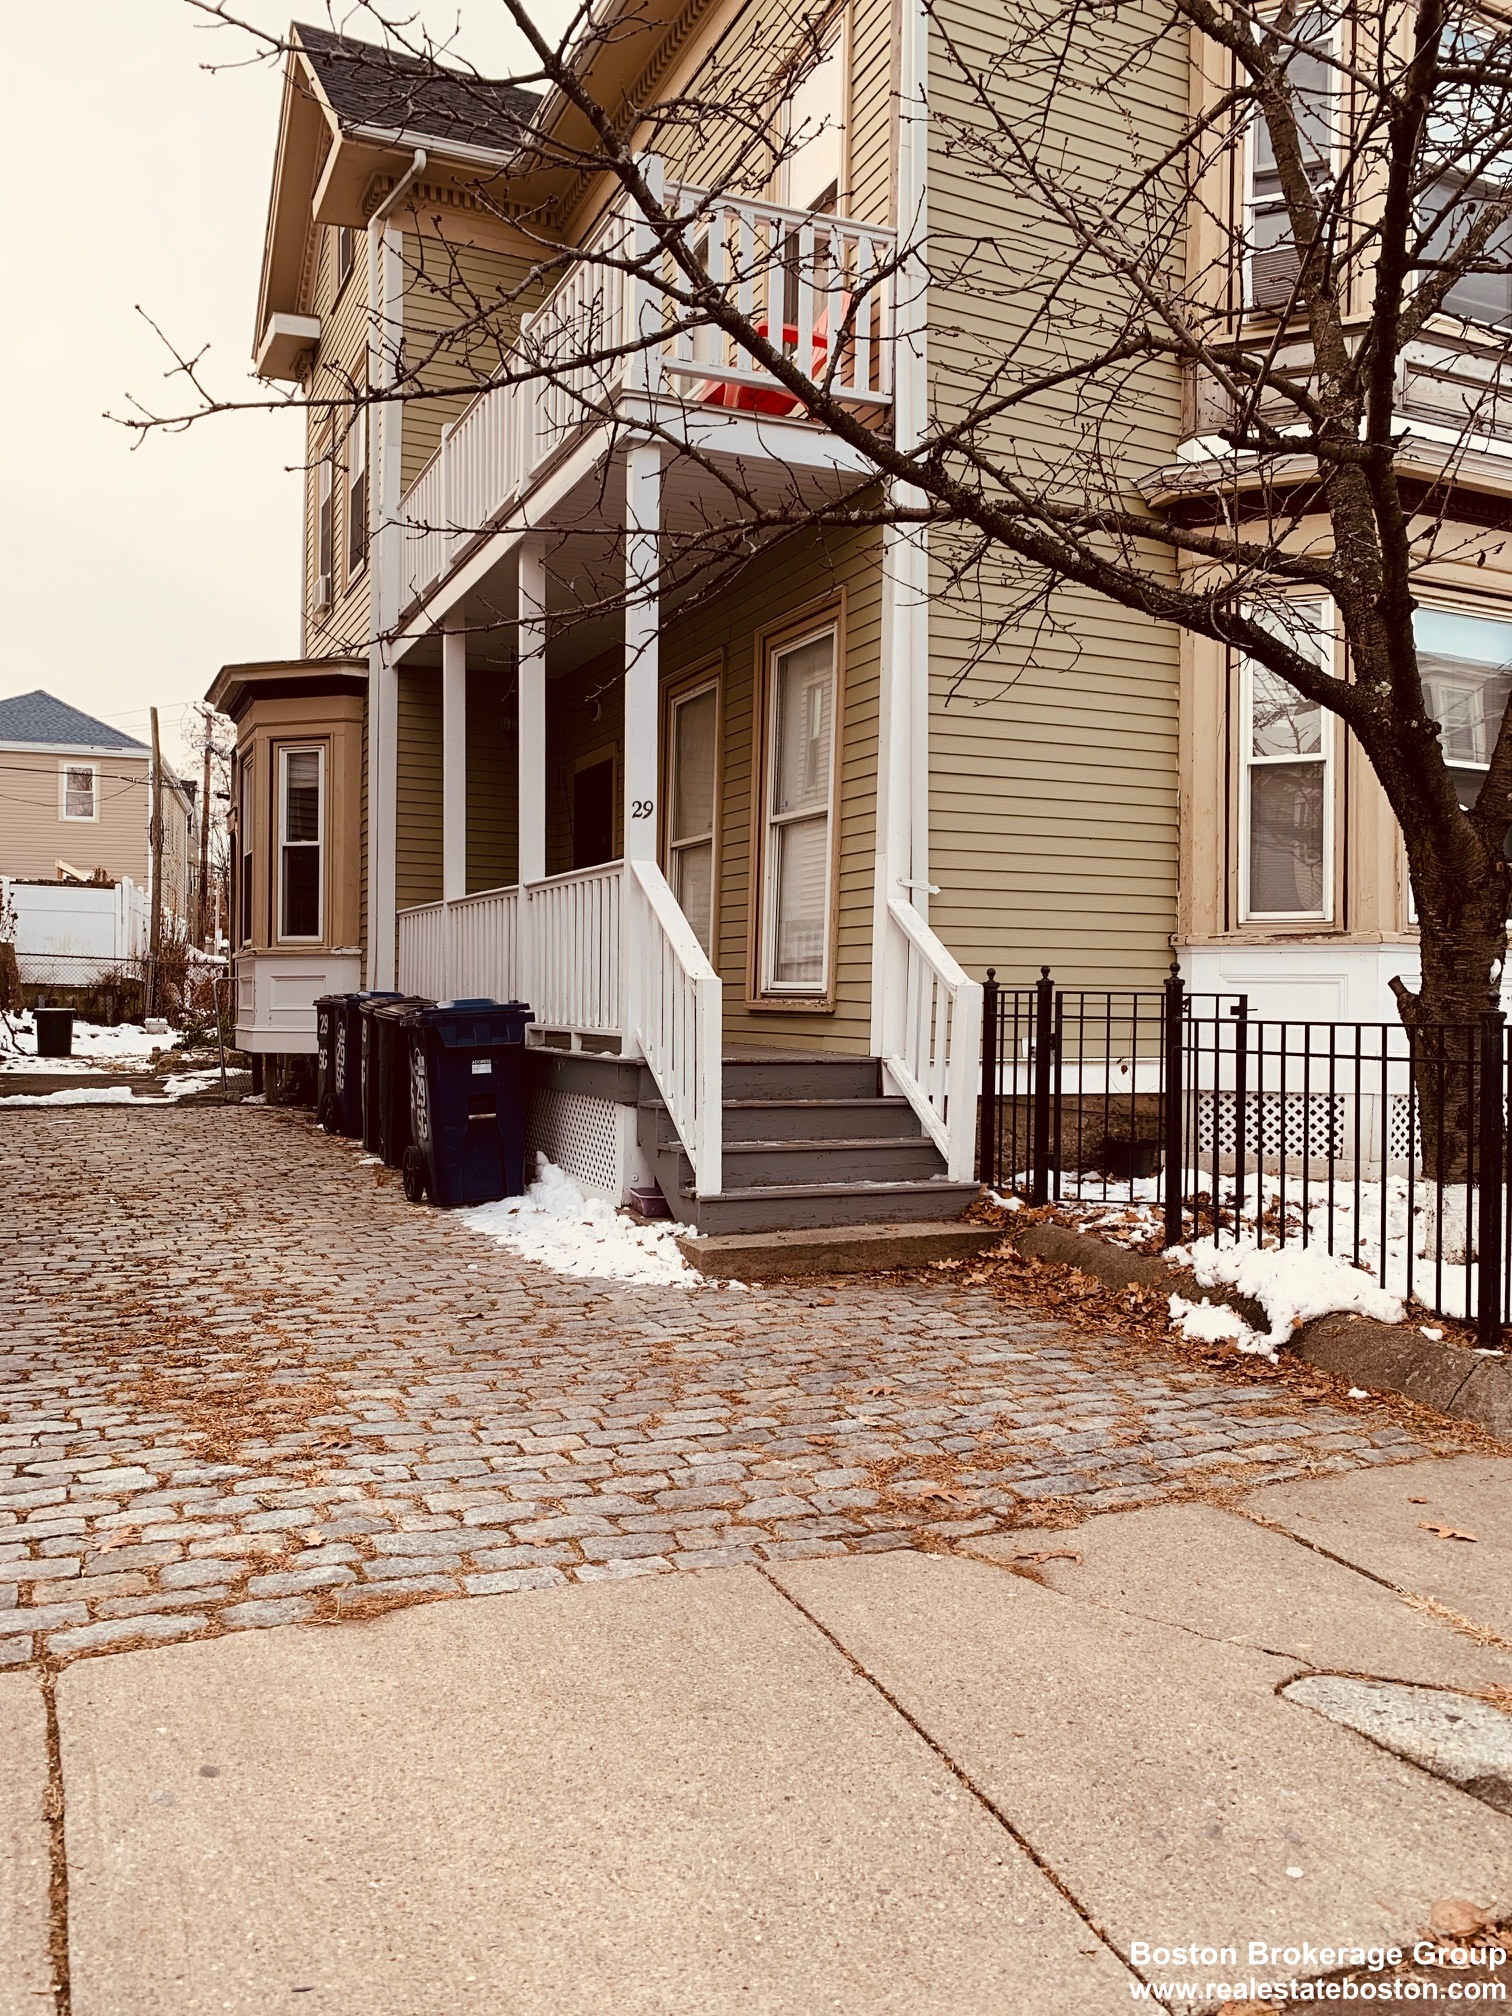 6 Beds, 2 Baths apartment in Boston, Dorchester for $5,150